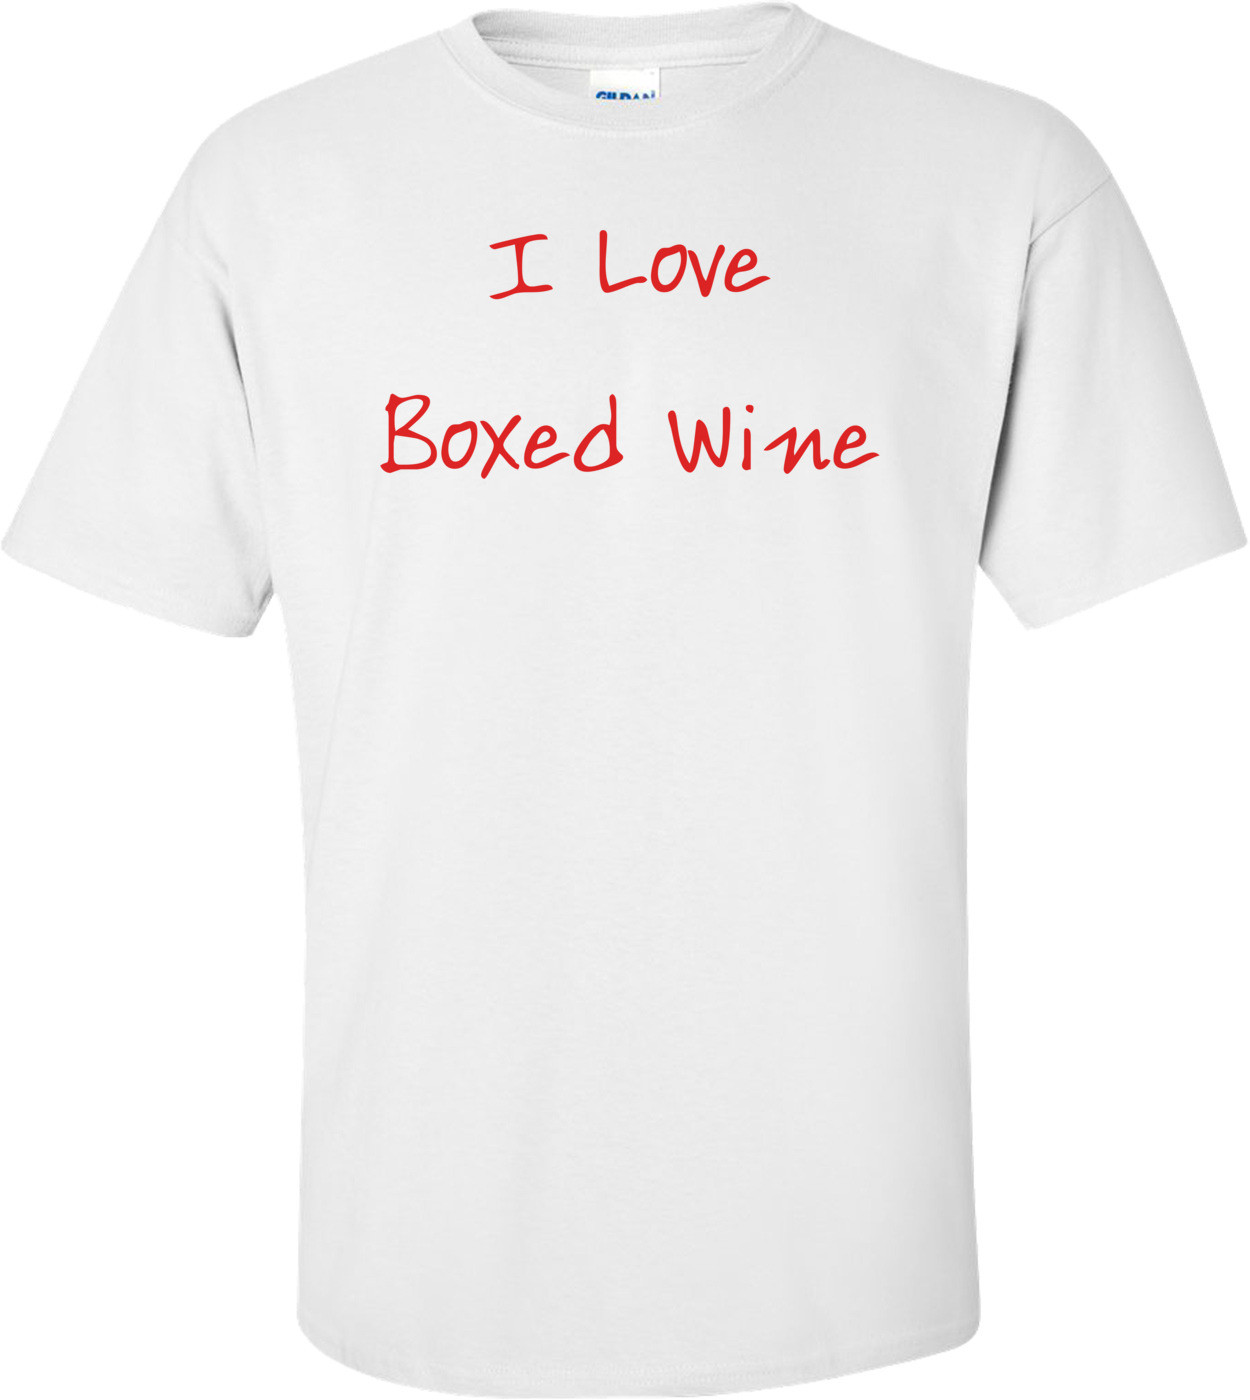 I Love Boxed Wine Shirt